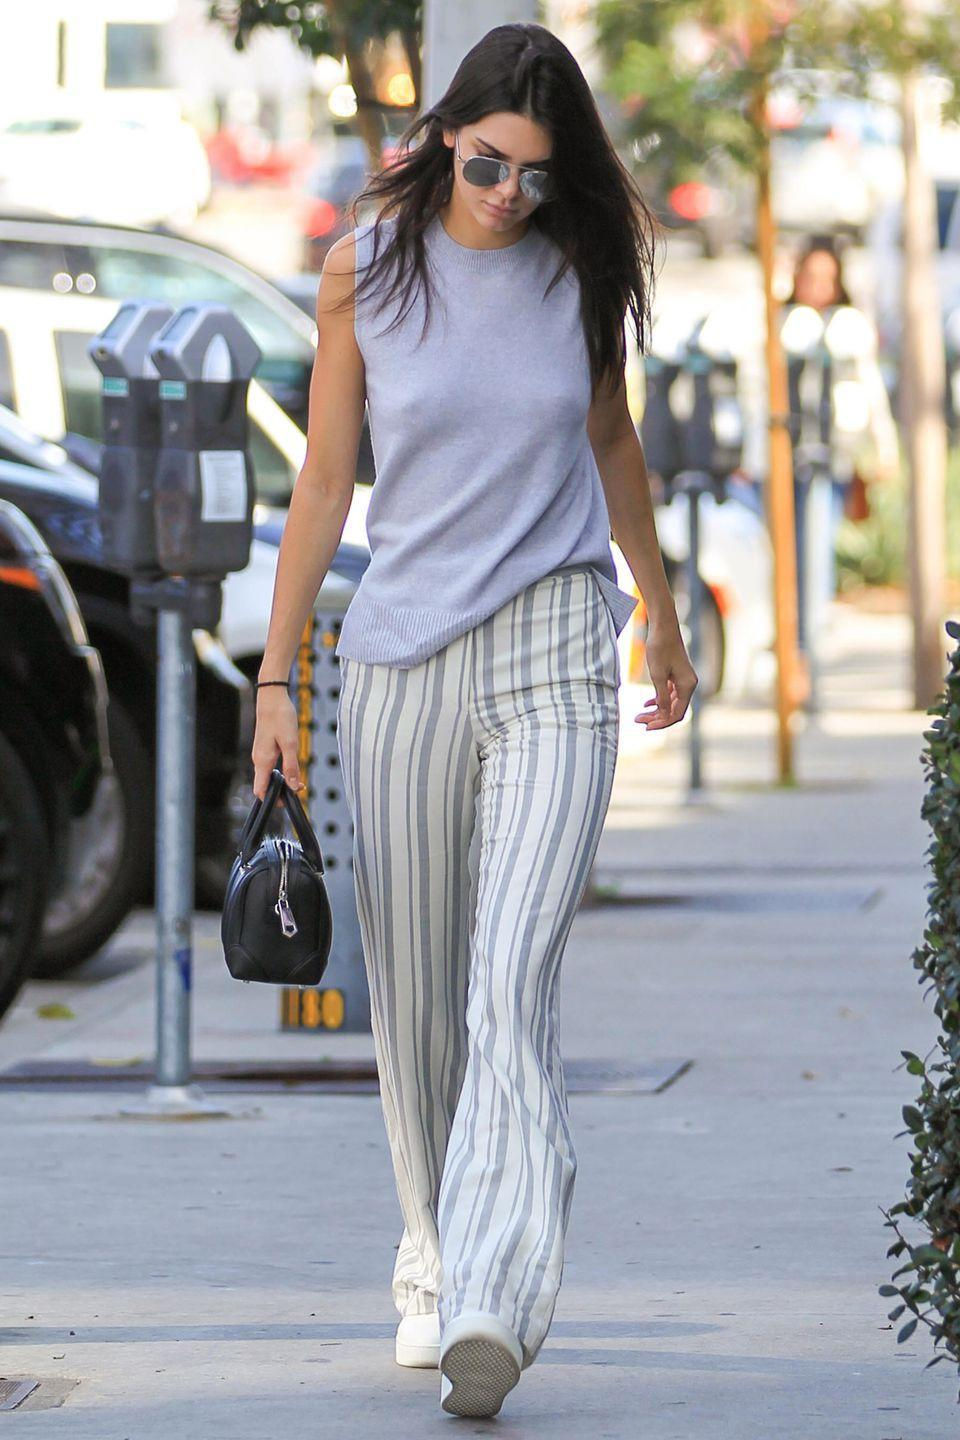 <p>Although Kendall Jenner might have supermodel legs, you don't have to be vertically gifted to wear flares. Team them with trainers or sandals and sport them until summer arrives.</p>